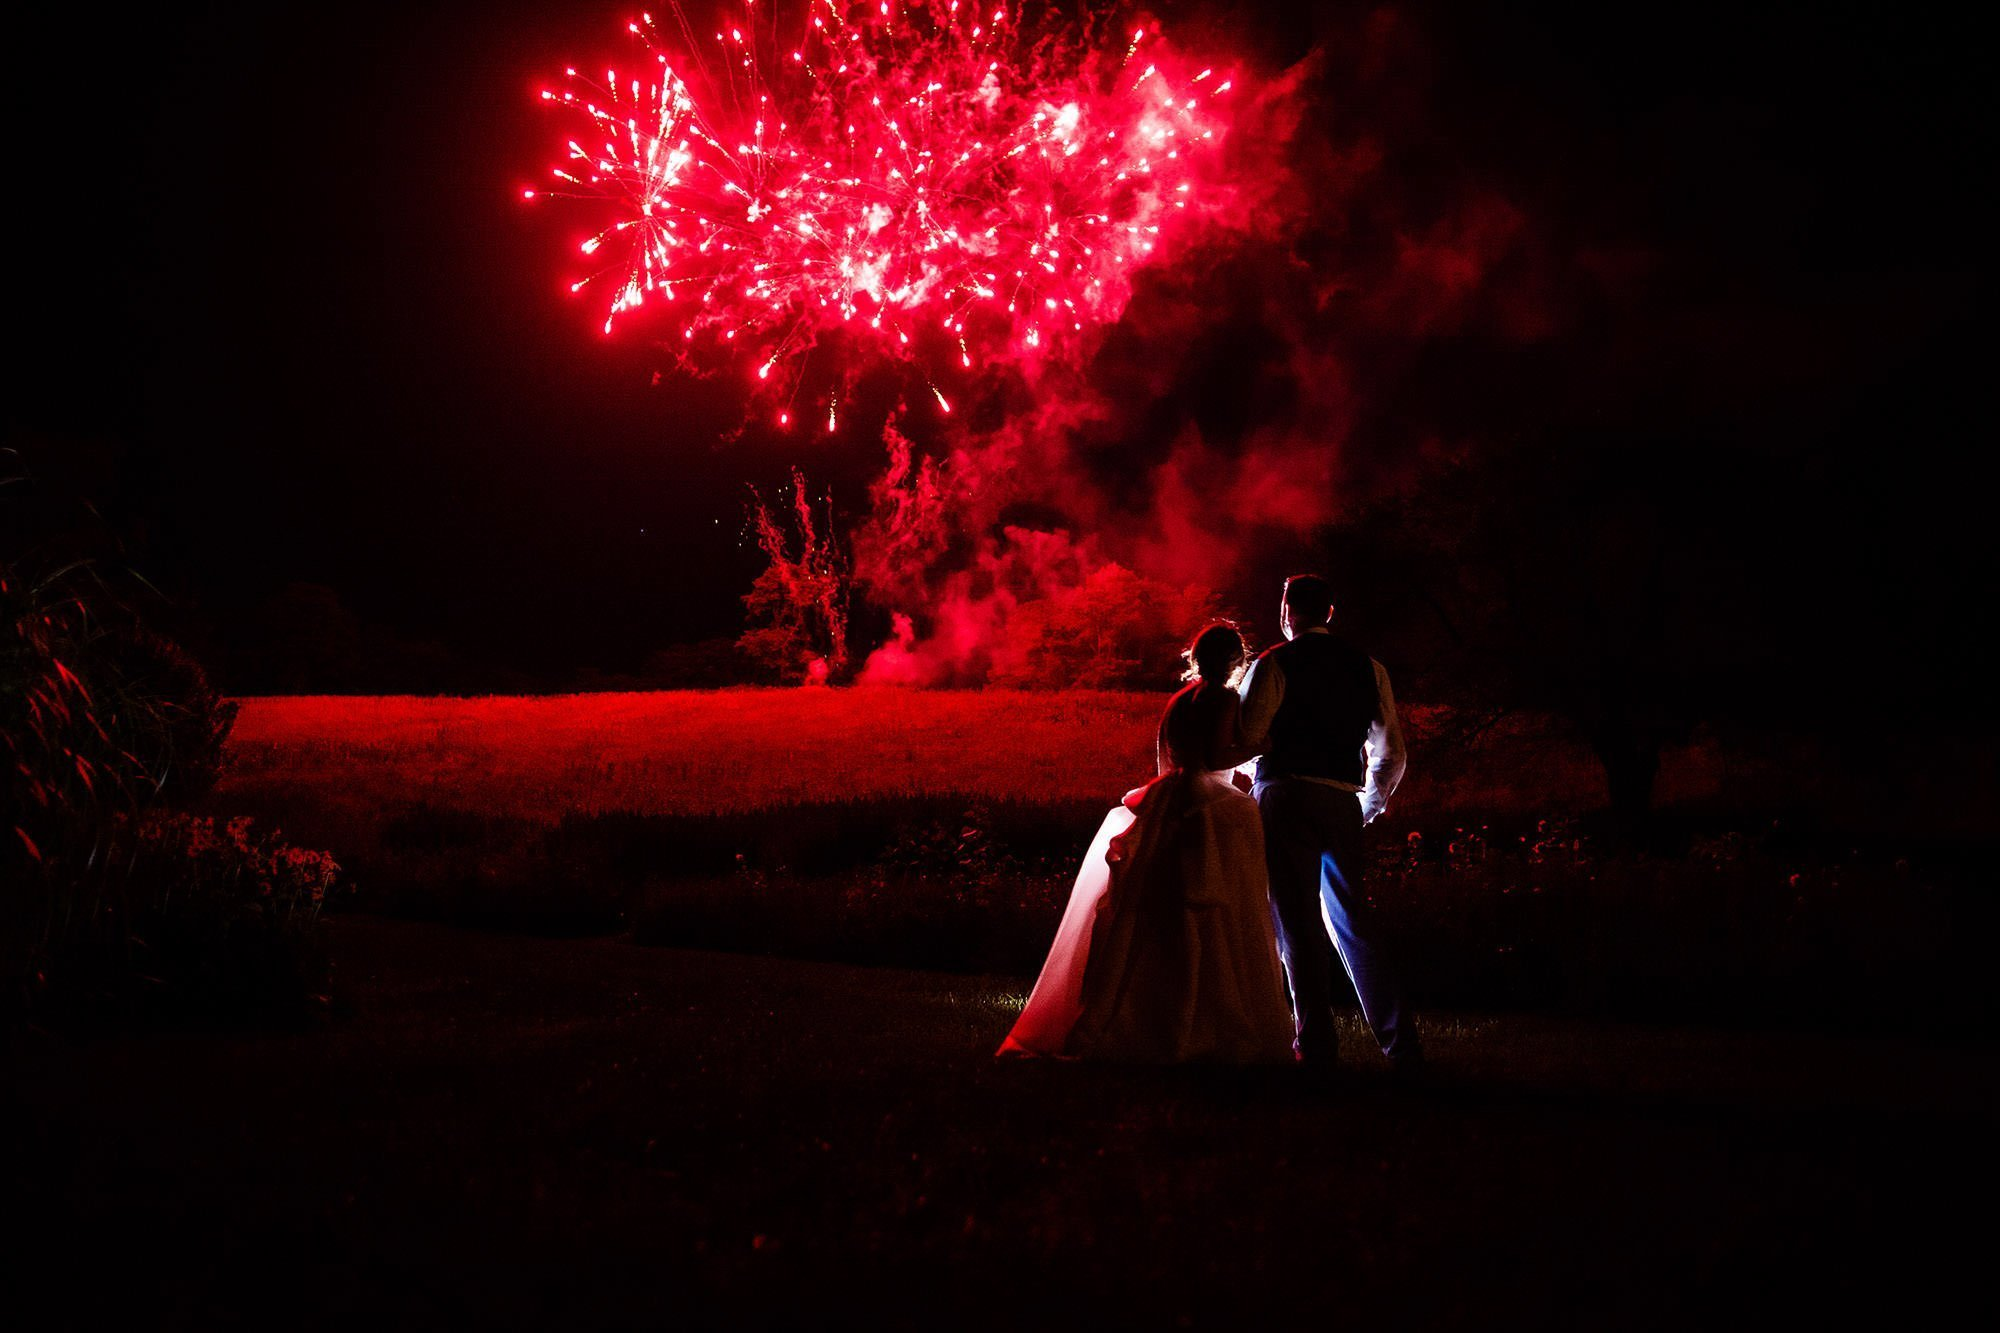 Red Maple Vineyard Wedding  I  The bride and groom watch fireworks during their reception on their wedding day in Upstate New York.